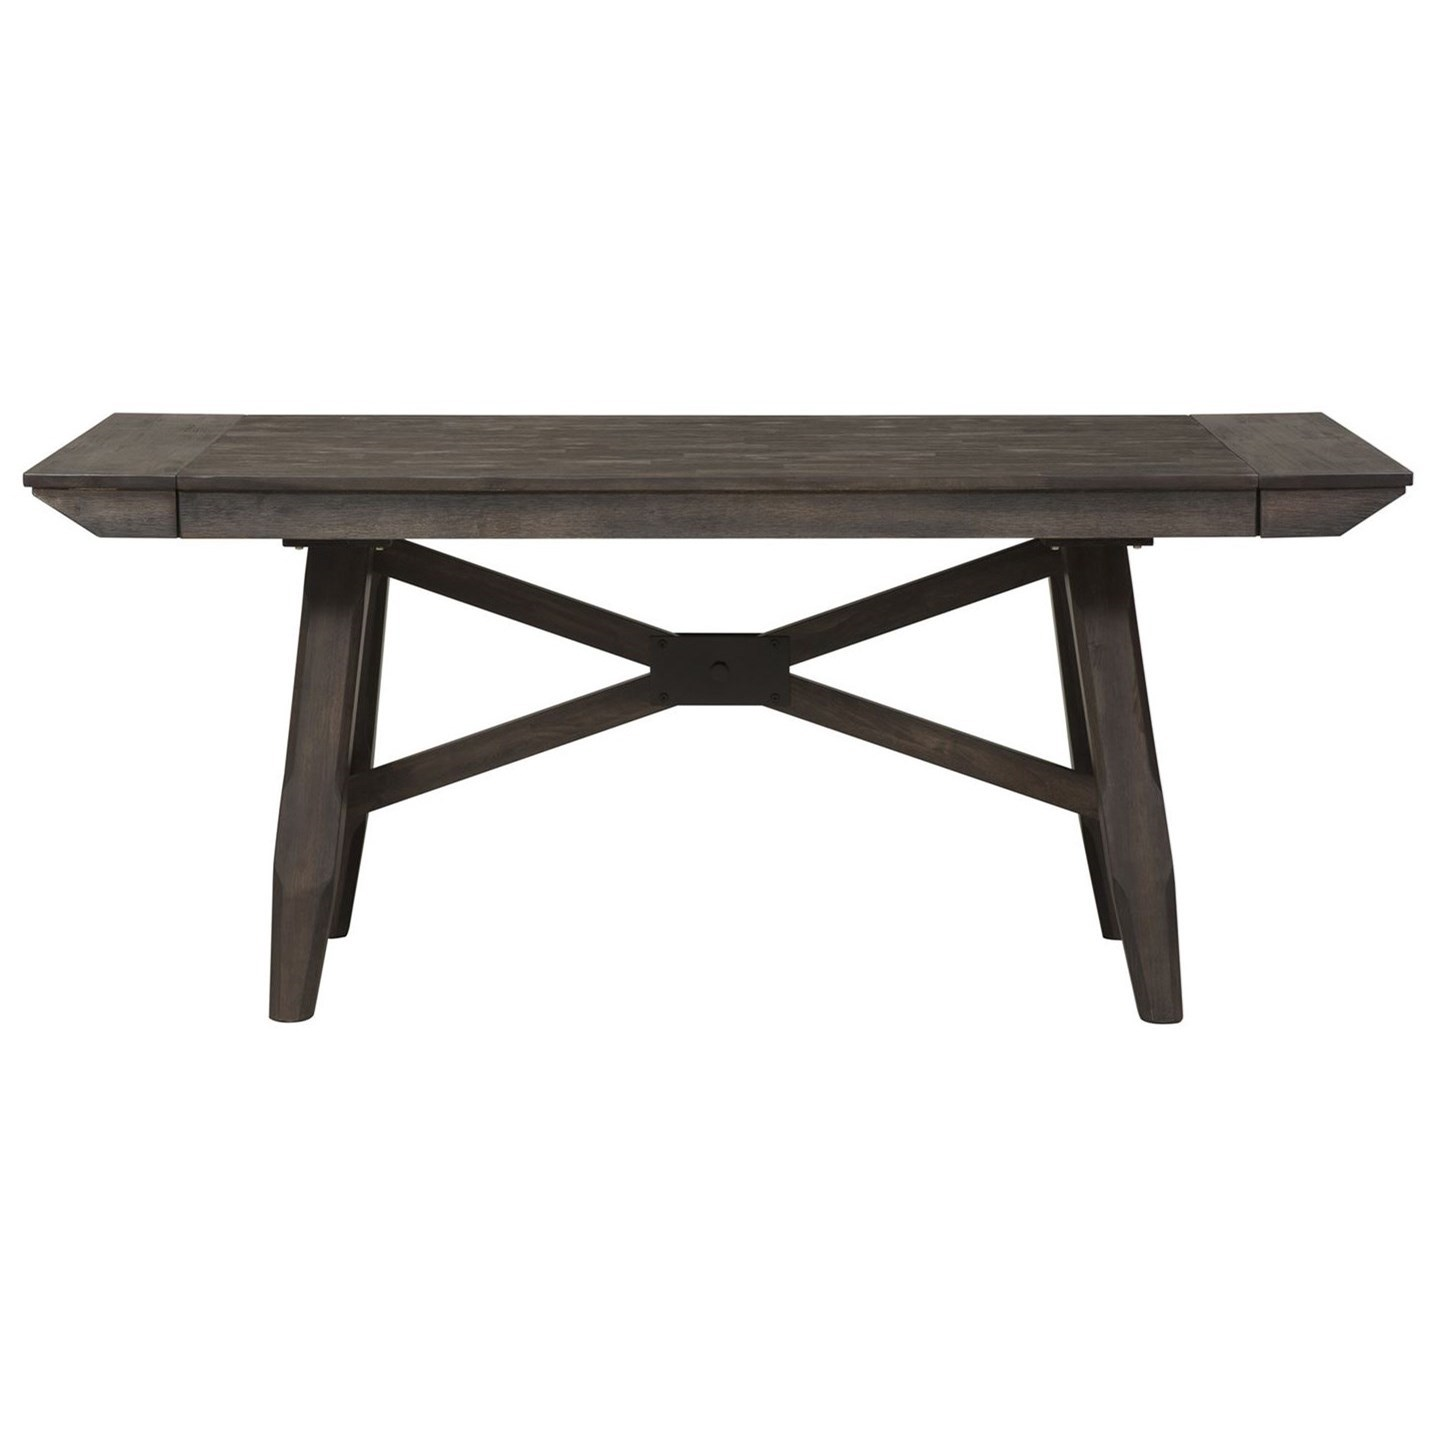 Double Bridge Trestle Table by Liberty Furniture at Northeast Factory Direct